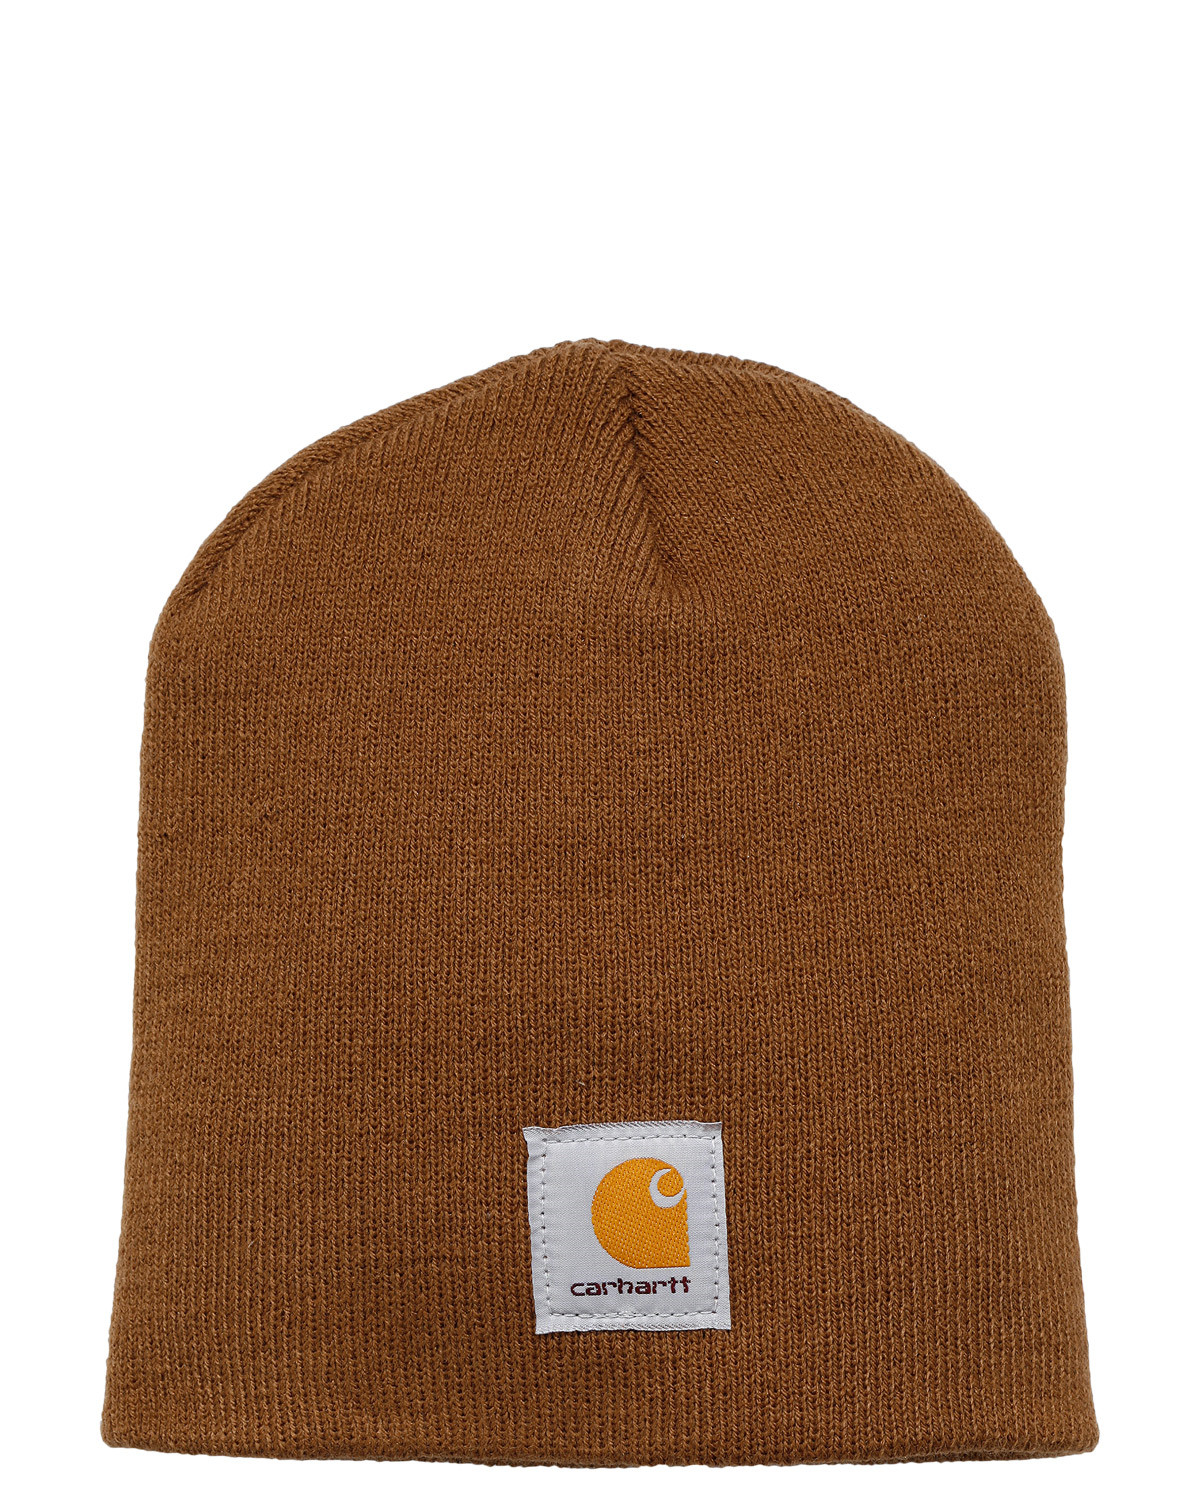 Image of   Carhartt Strik Hue (Brun, One Size)